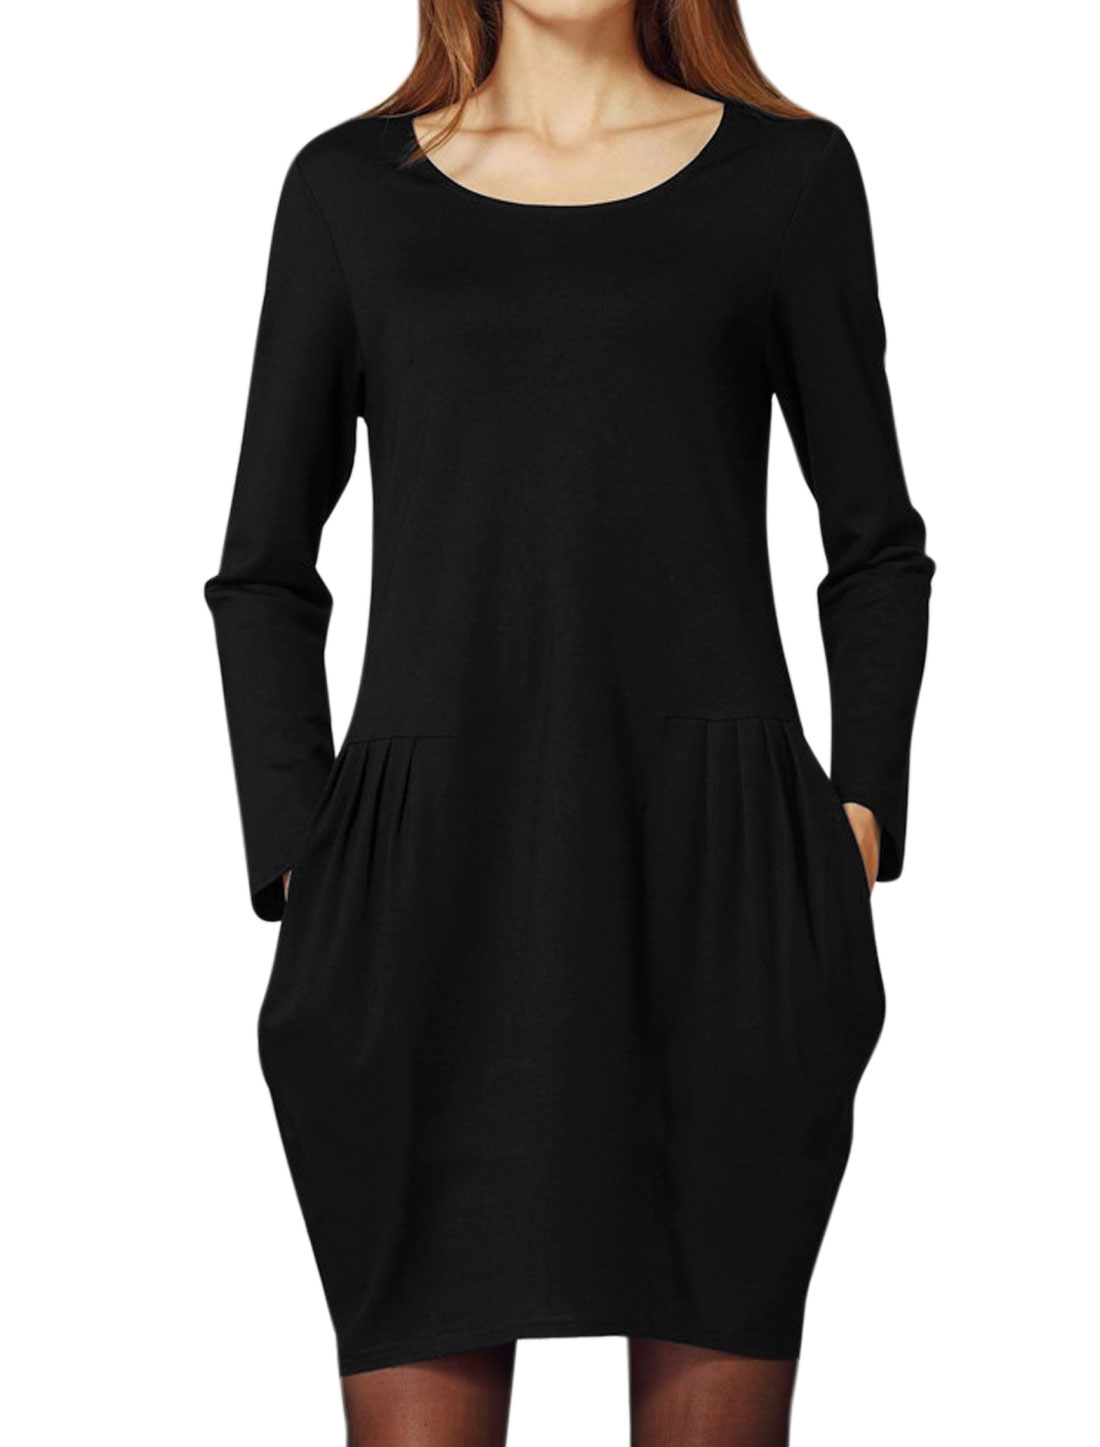 Women Round Neck Side Pockets Pleated Tunic Dress Black L